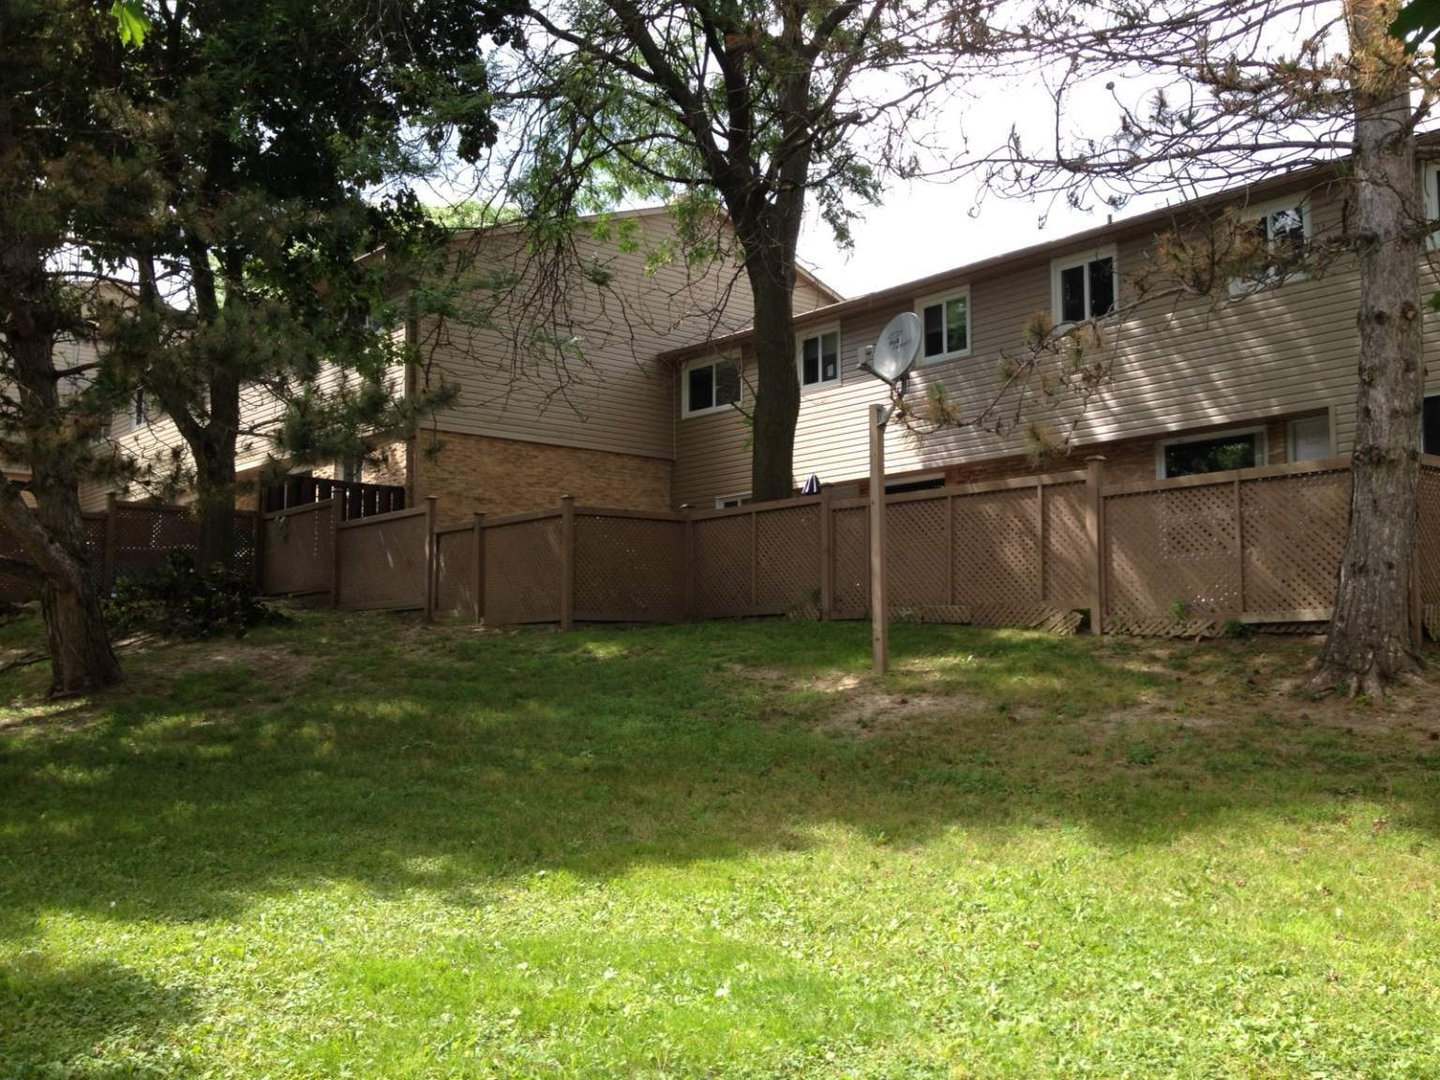 House for rent at 700 Parkhill Road West, Peterborough, ON.